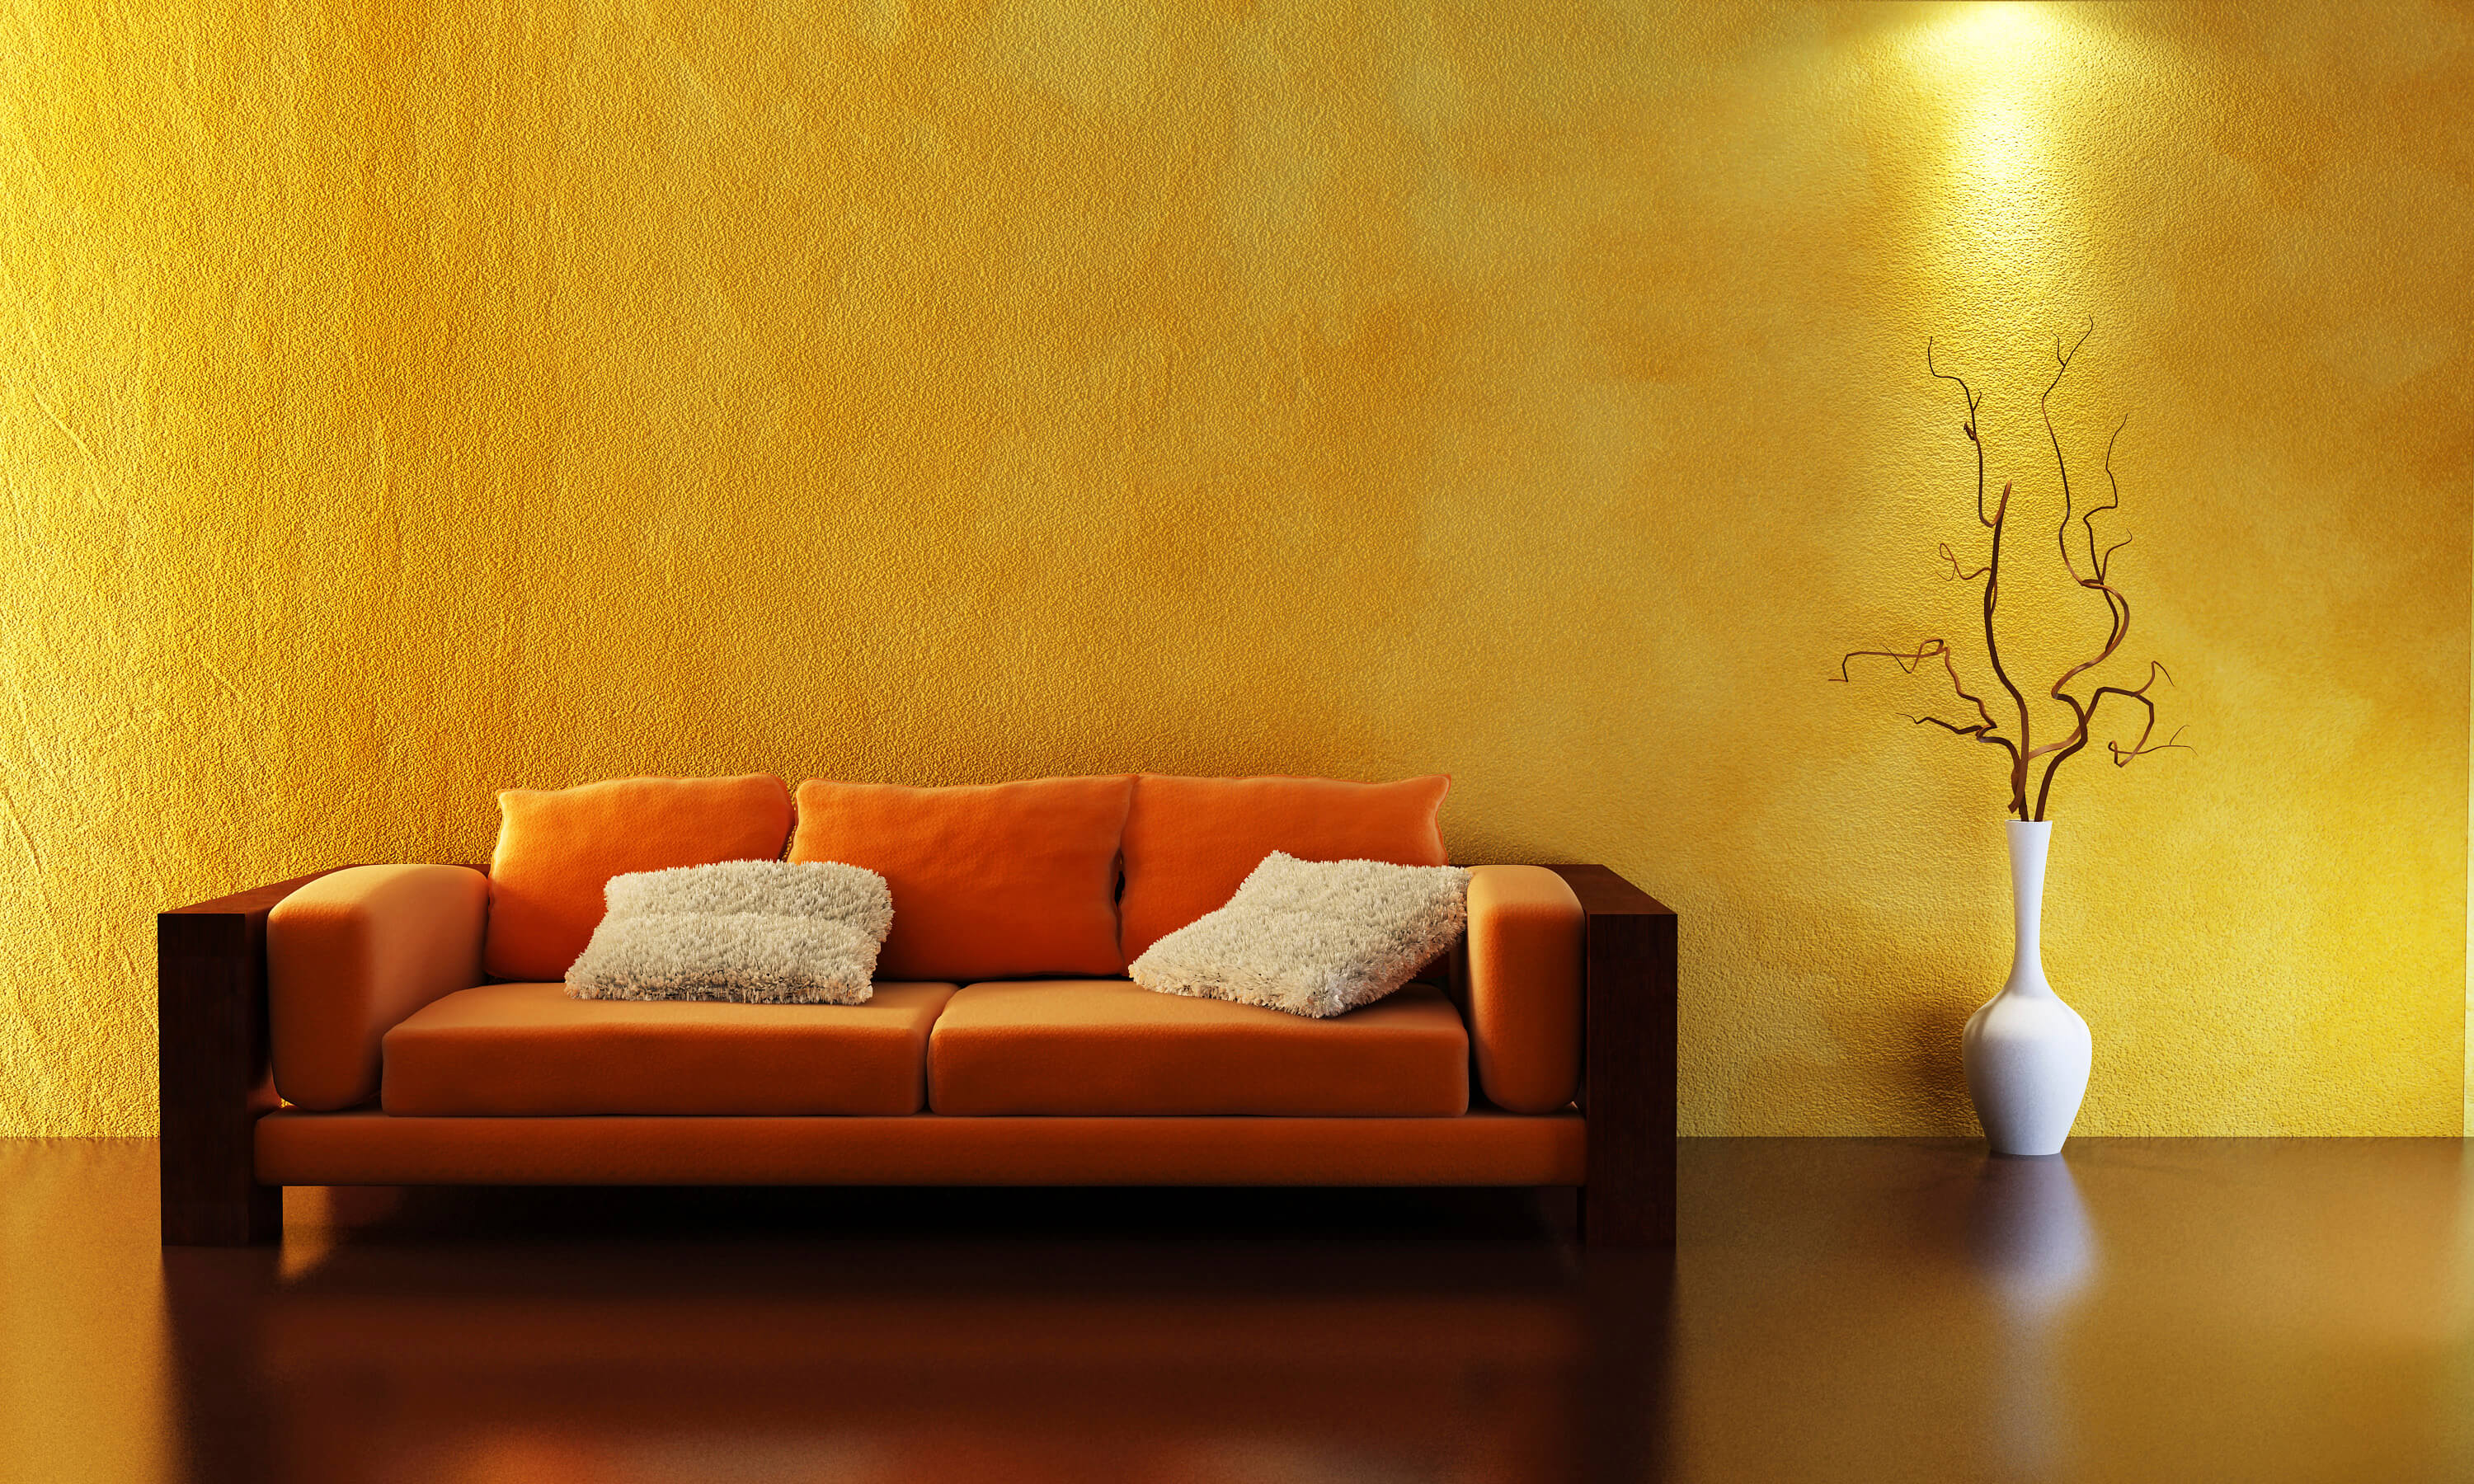 Save Time And Money With Upholstery Cleaning Southside Chem Dry